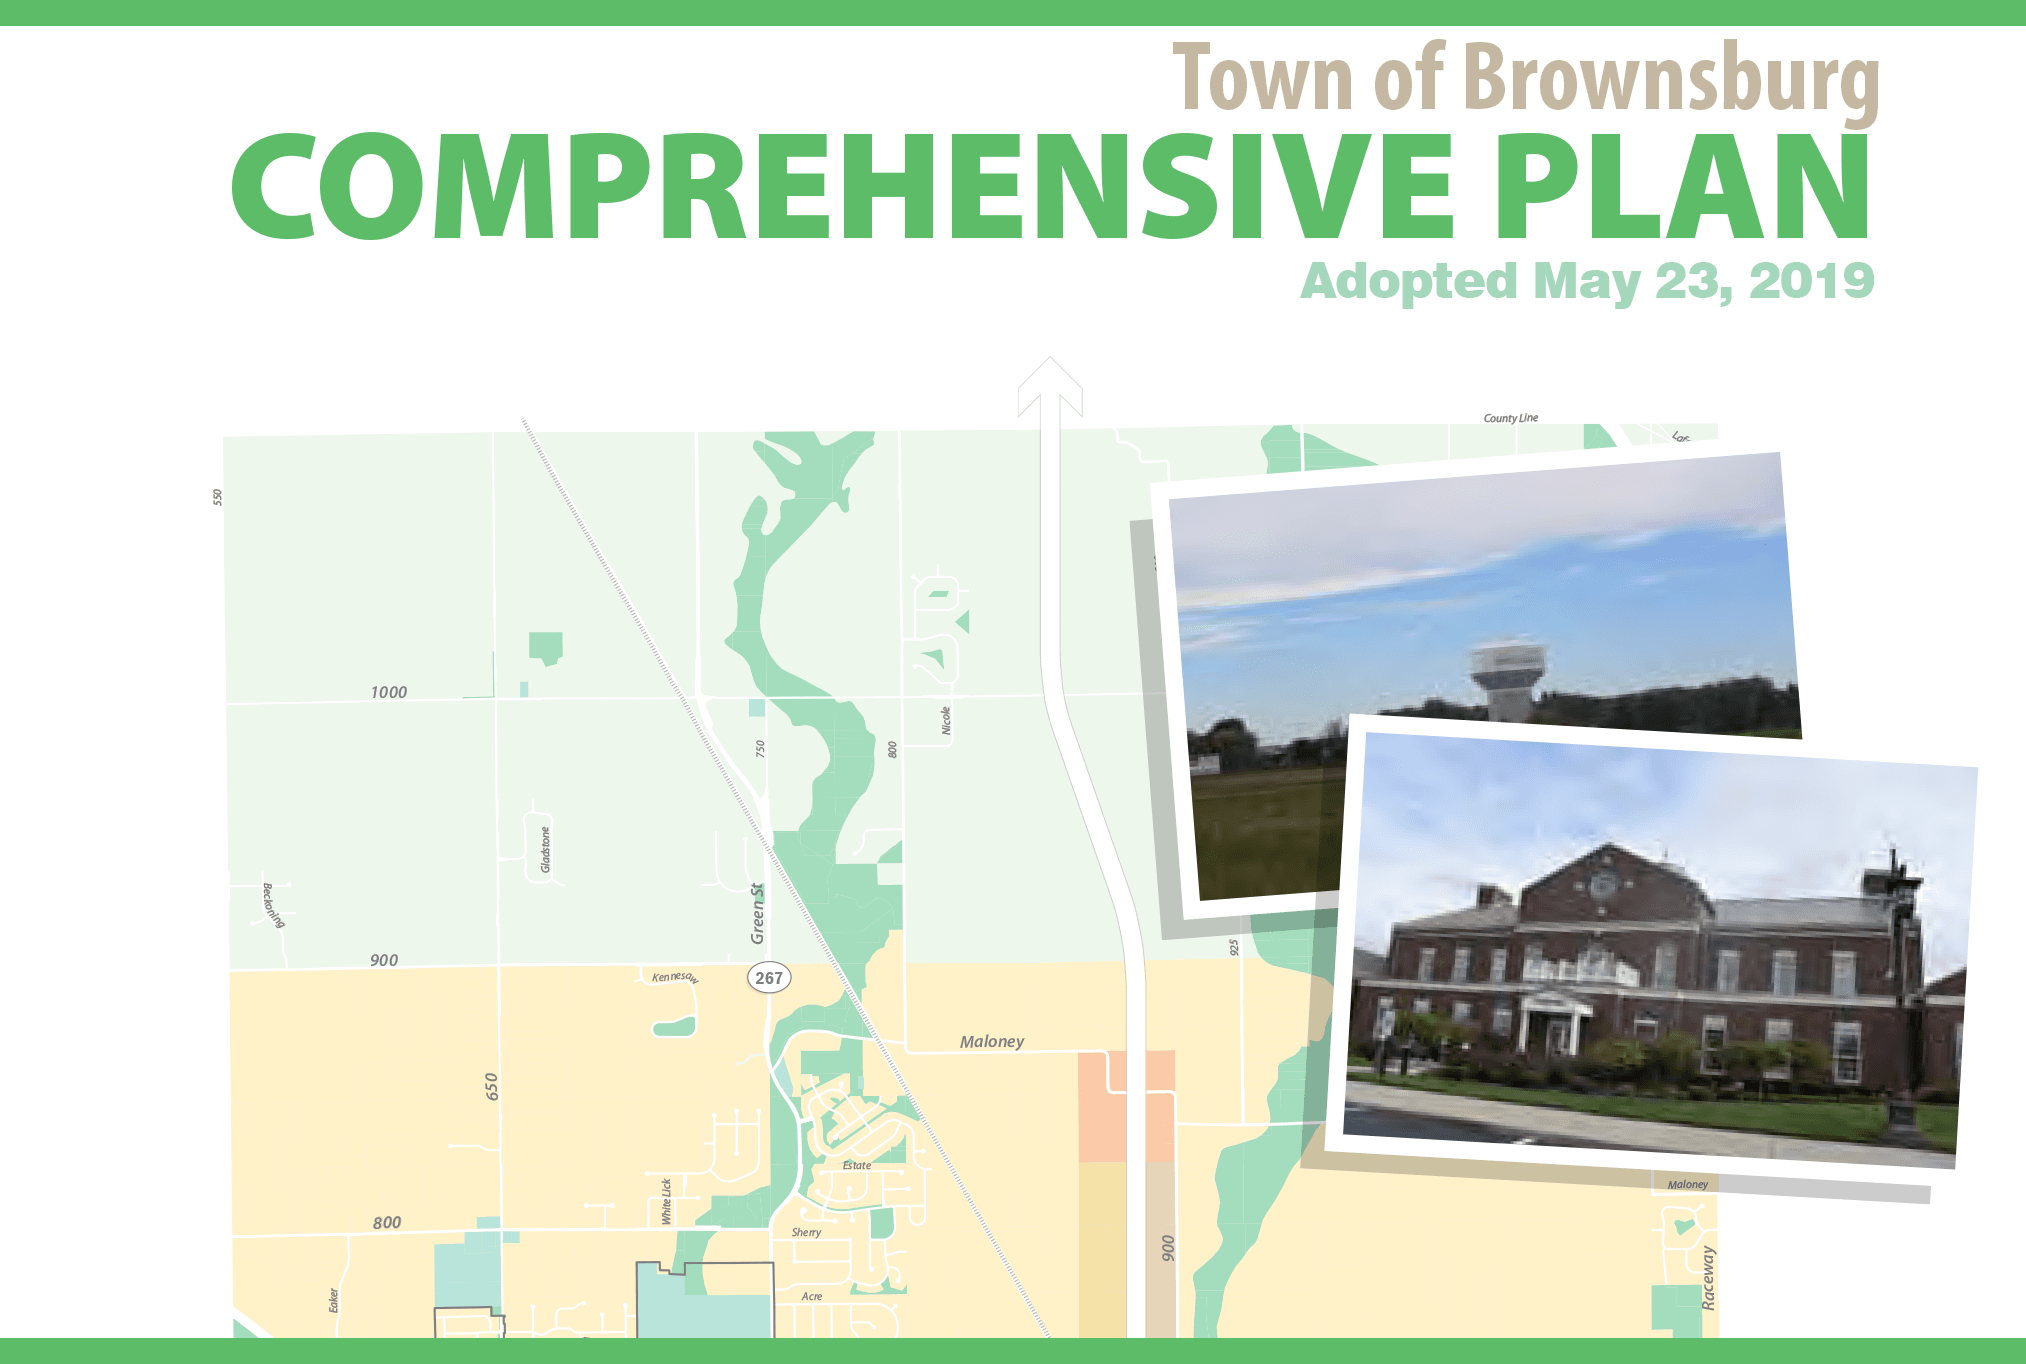 Town of Brownsburg Comprehensive Plan